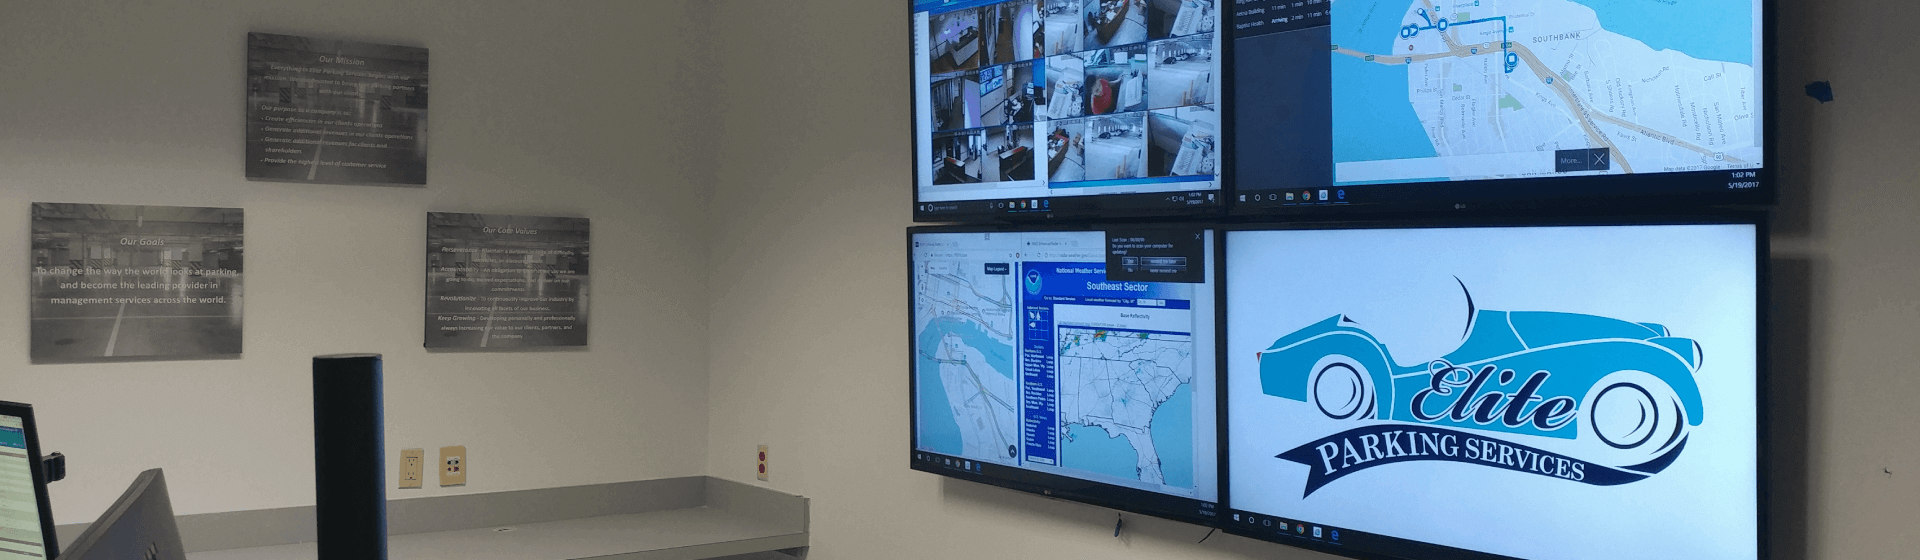 Image of E-command operations oversight